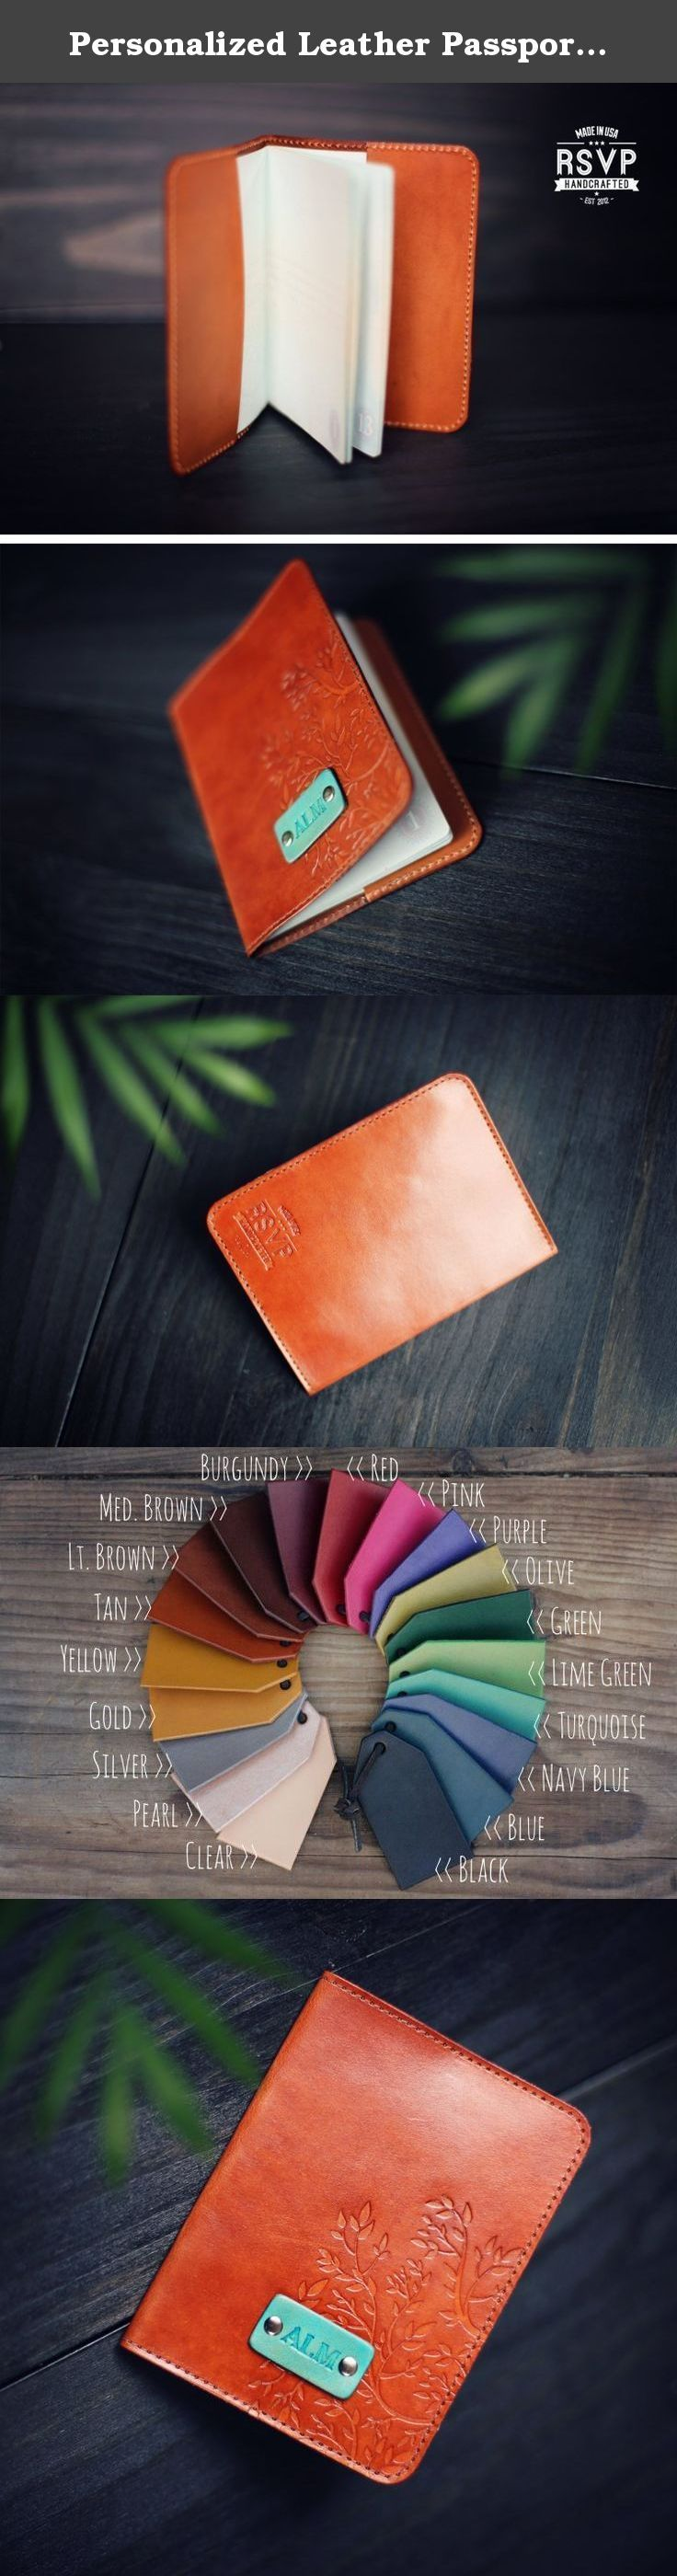 Personalized Leather Passport Cover, Real Leather, holder, wanderlust, travel, Tree Branches stamp, handmade, Custom text, name initials. Custom personalized real leather Passport Cover, it's 100 % Handmade and hand stamped. Perfect personalized gift for your husband, wife, girlfriend, boyfriend, brother or sister :) Trendy Hipster Tree branches stamp will make this stylish full grain leather passport holder a perfect gift. Unique Birthday gift, Anniversary, Wedding, Shower, graduation…